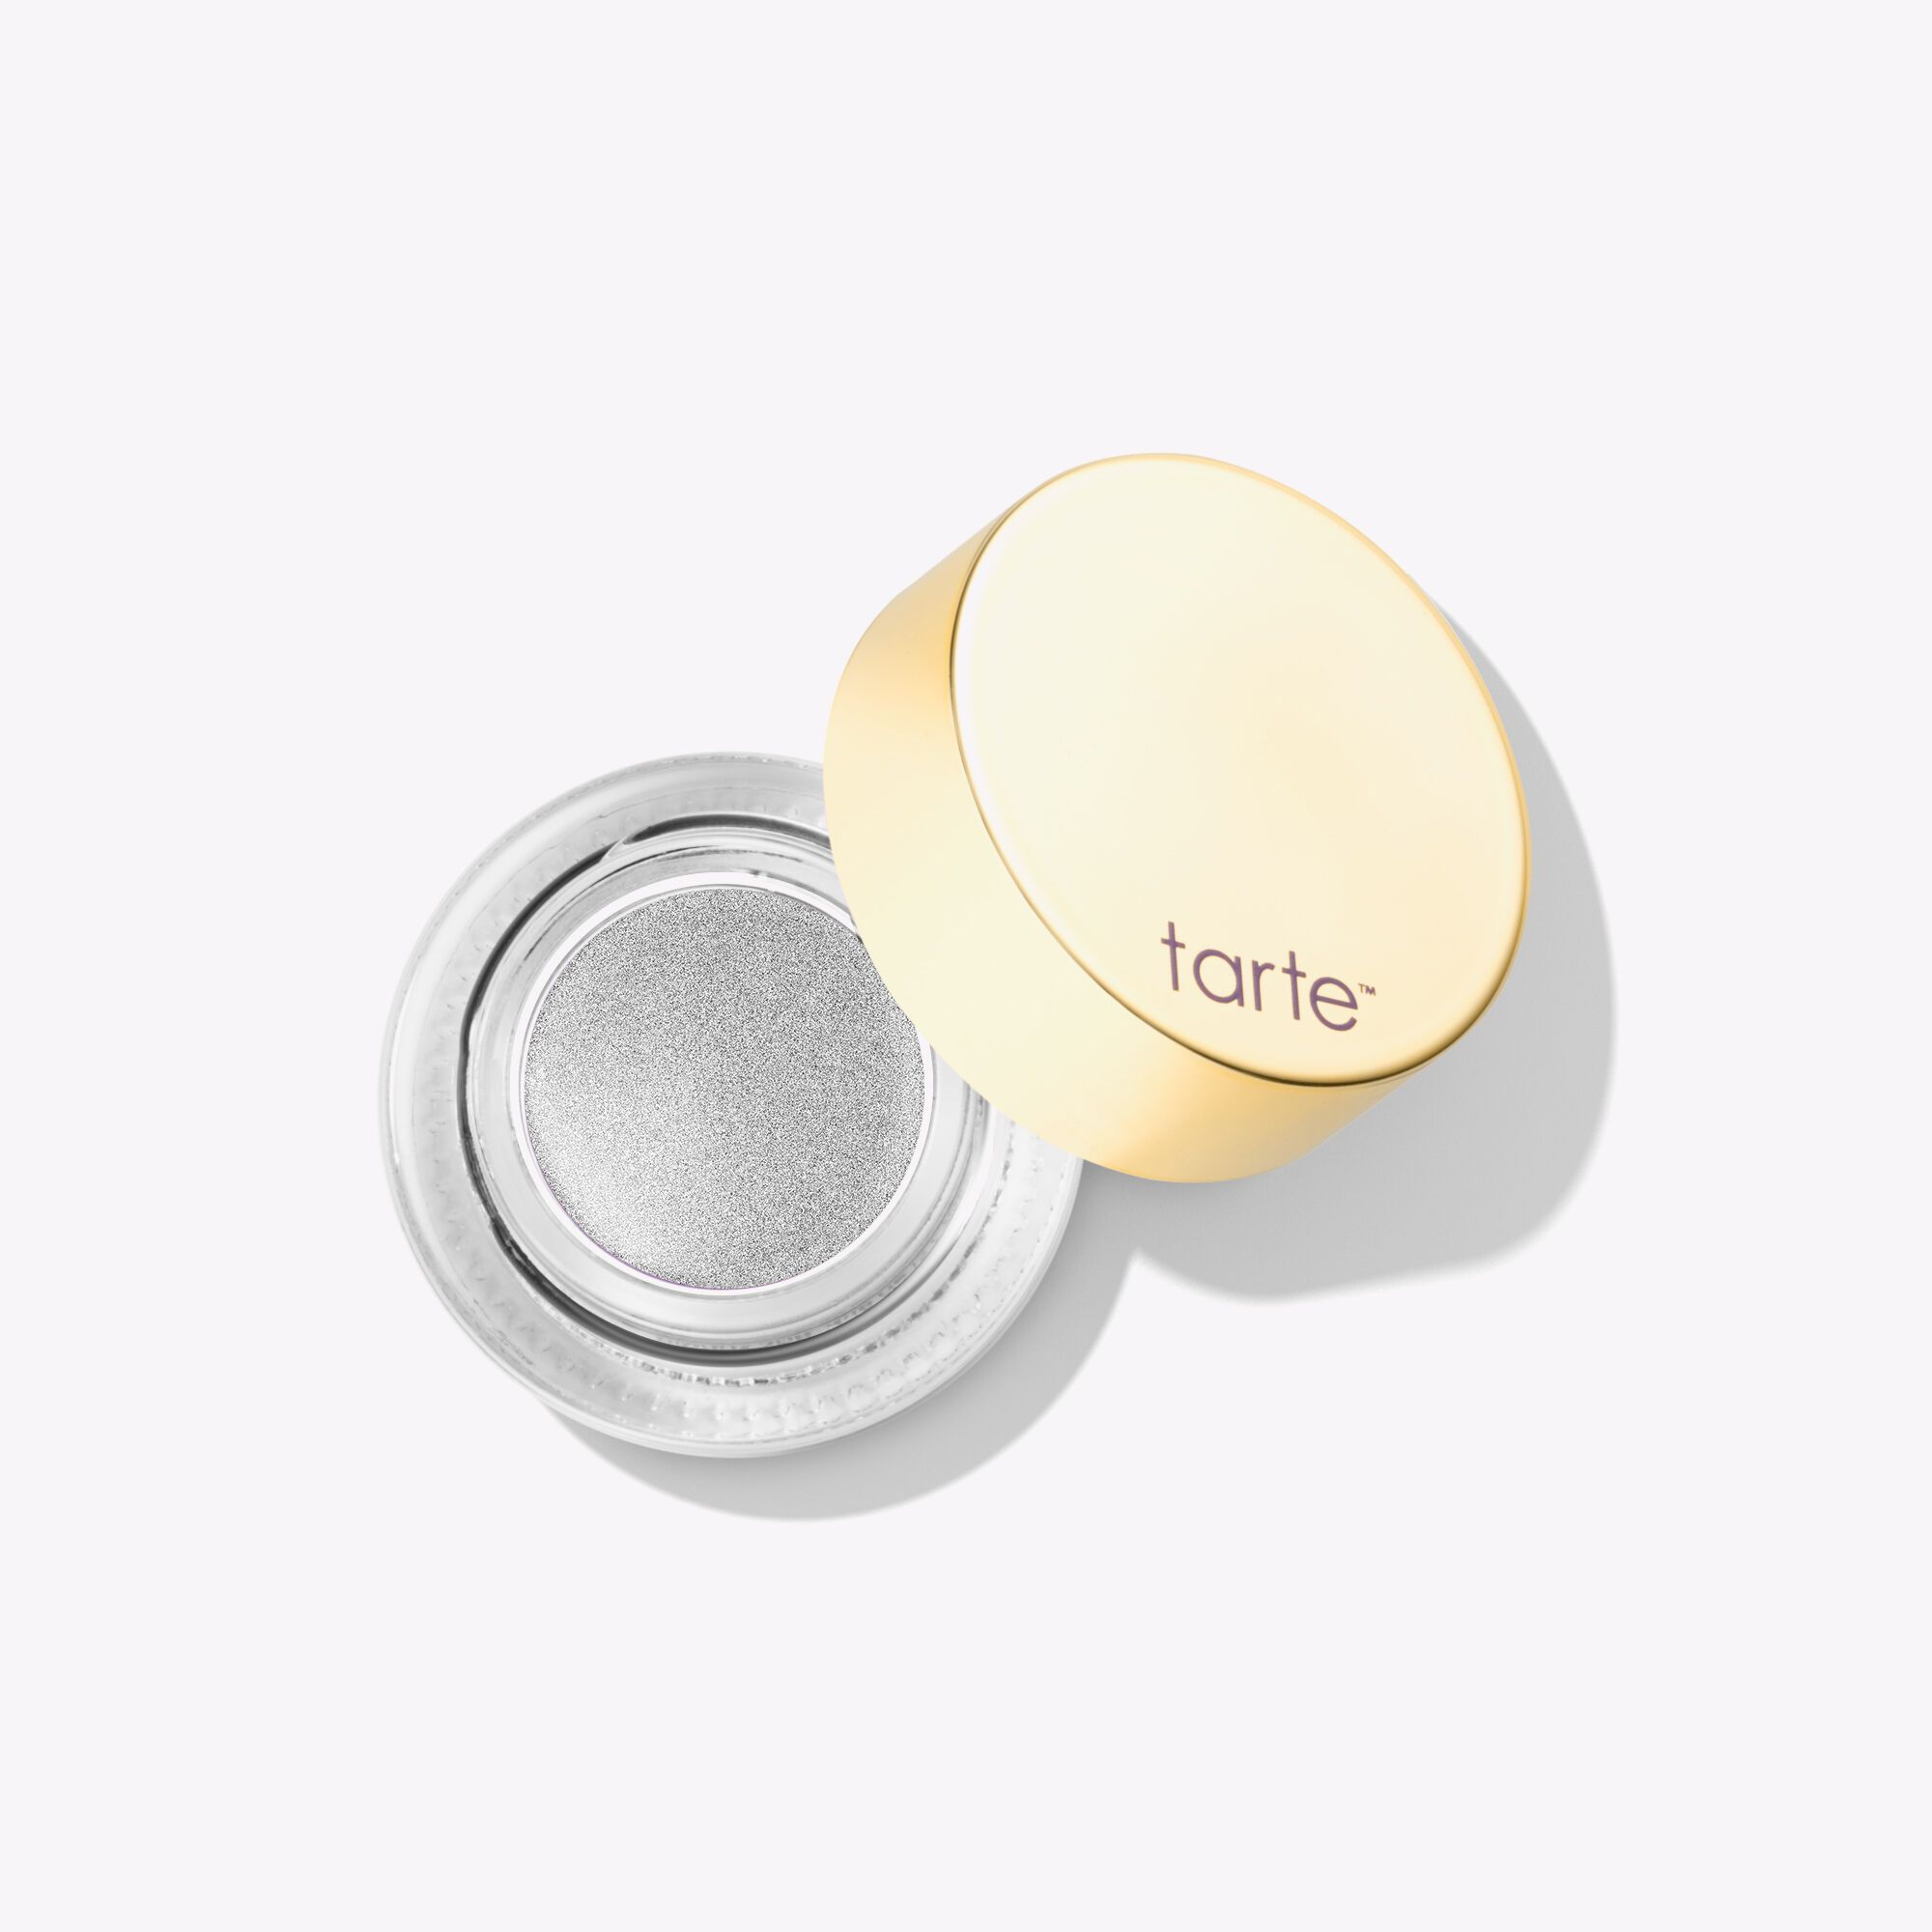 Tarte Silver Shadow - New Year's Eve Makeup